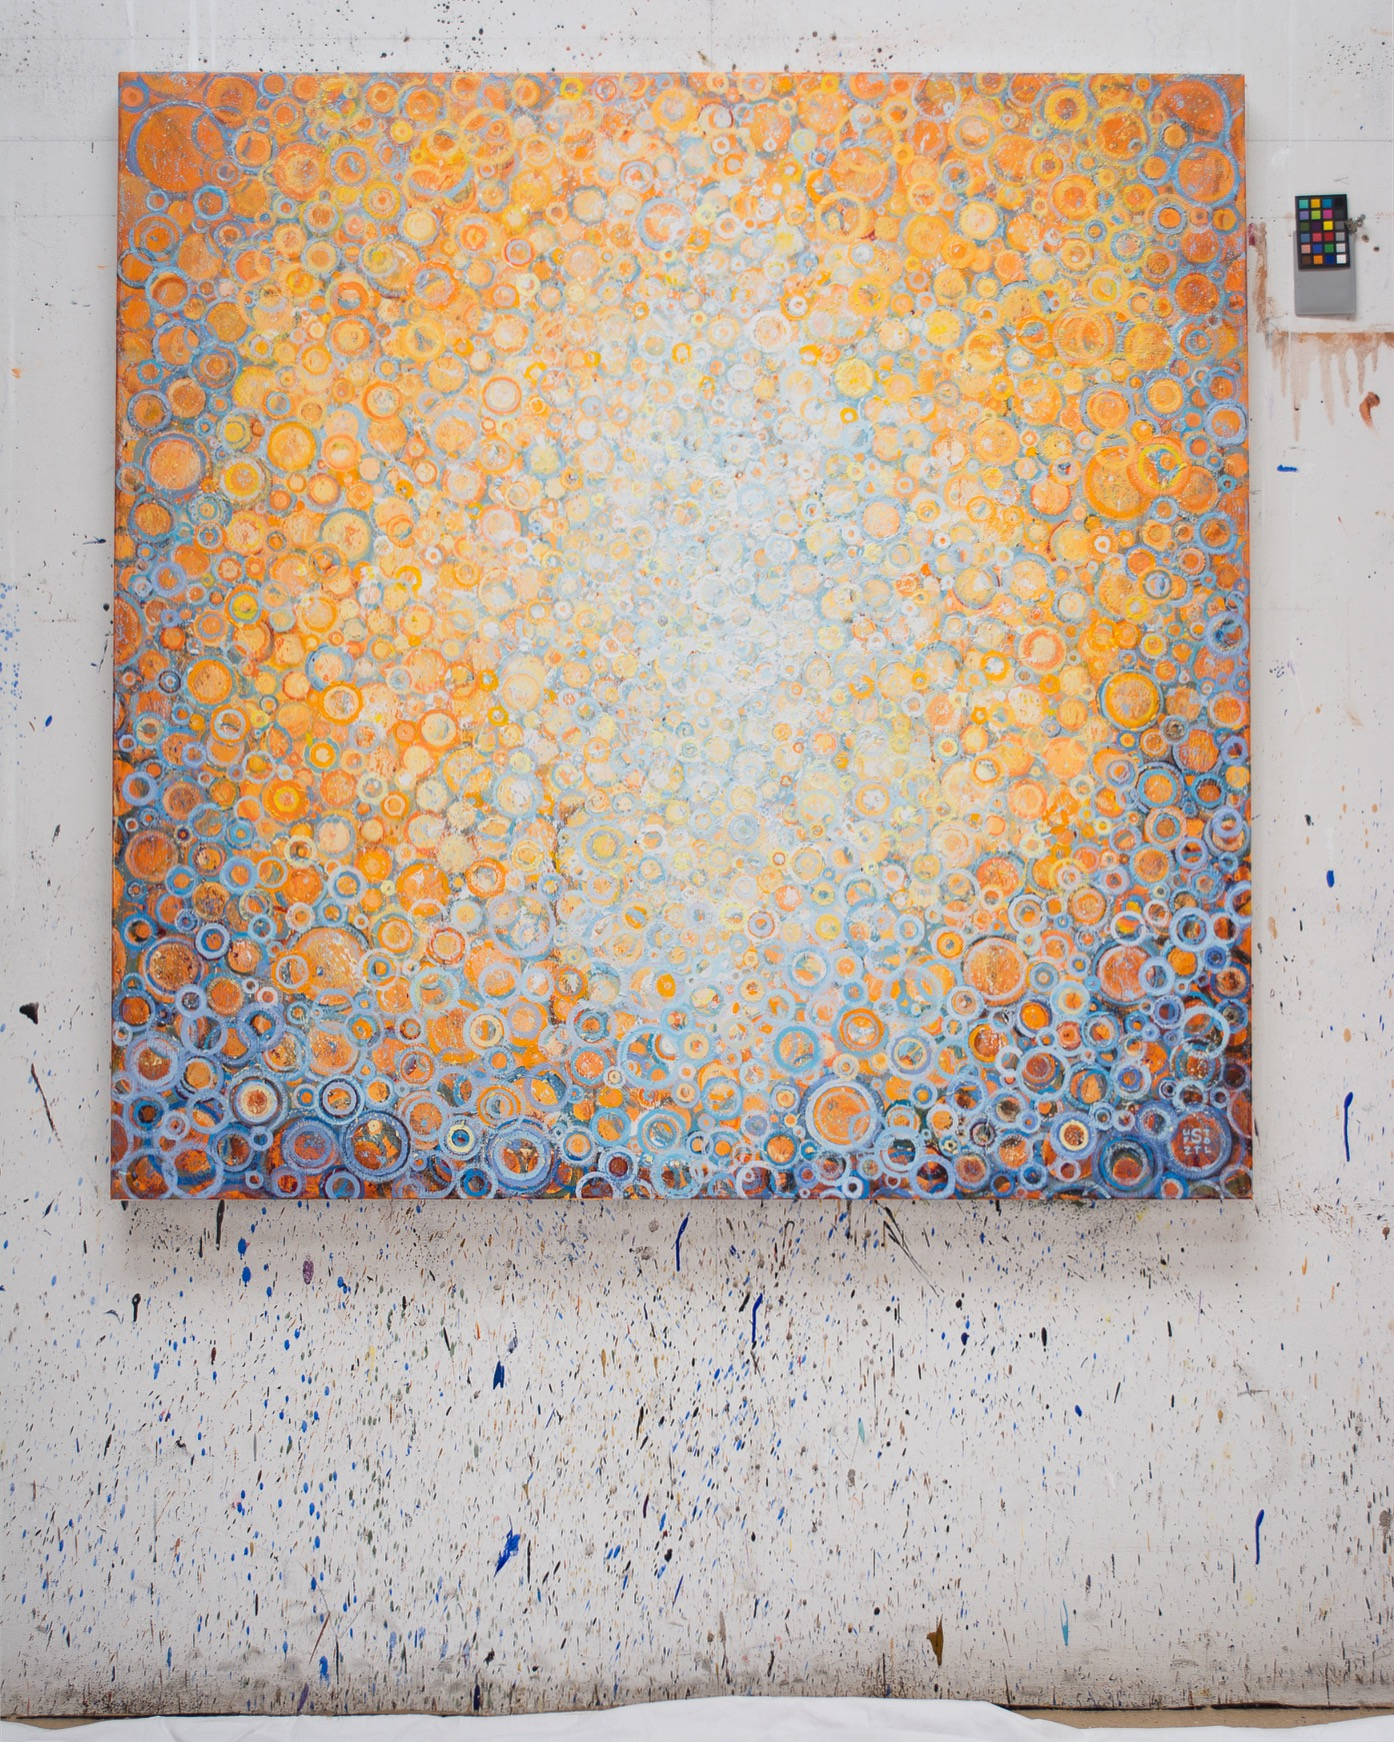 """The painting Orange and blue   Completed commissioned painting titled """"Seek"""" by Randall Stoltzfus hangs on paint-spattered wall of the artist's Brooklyn studio"""